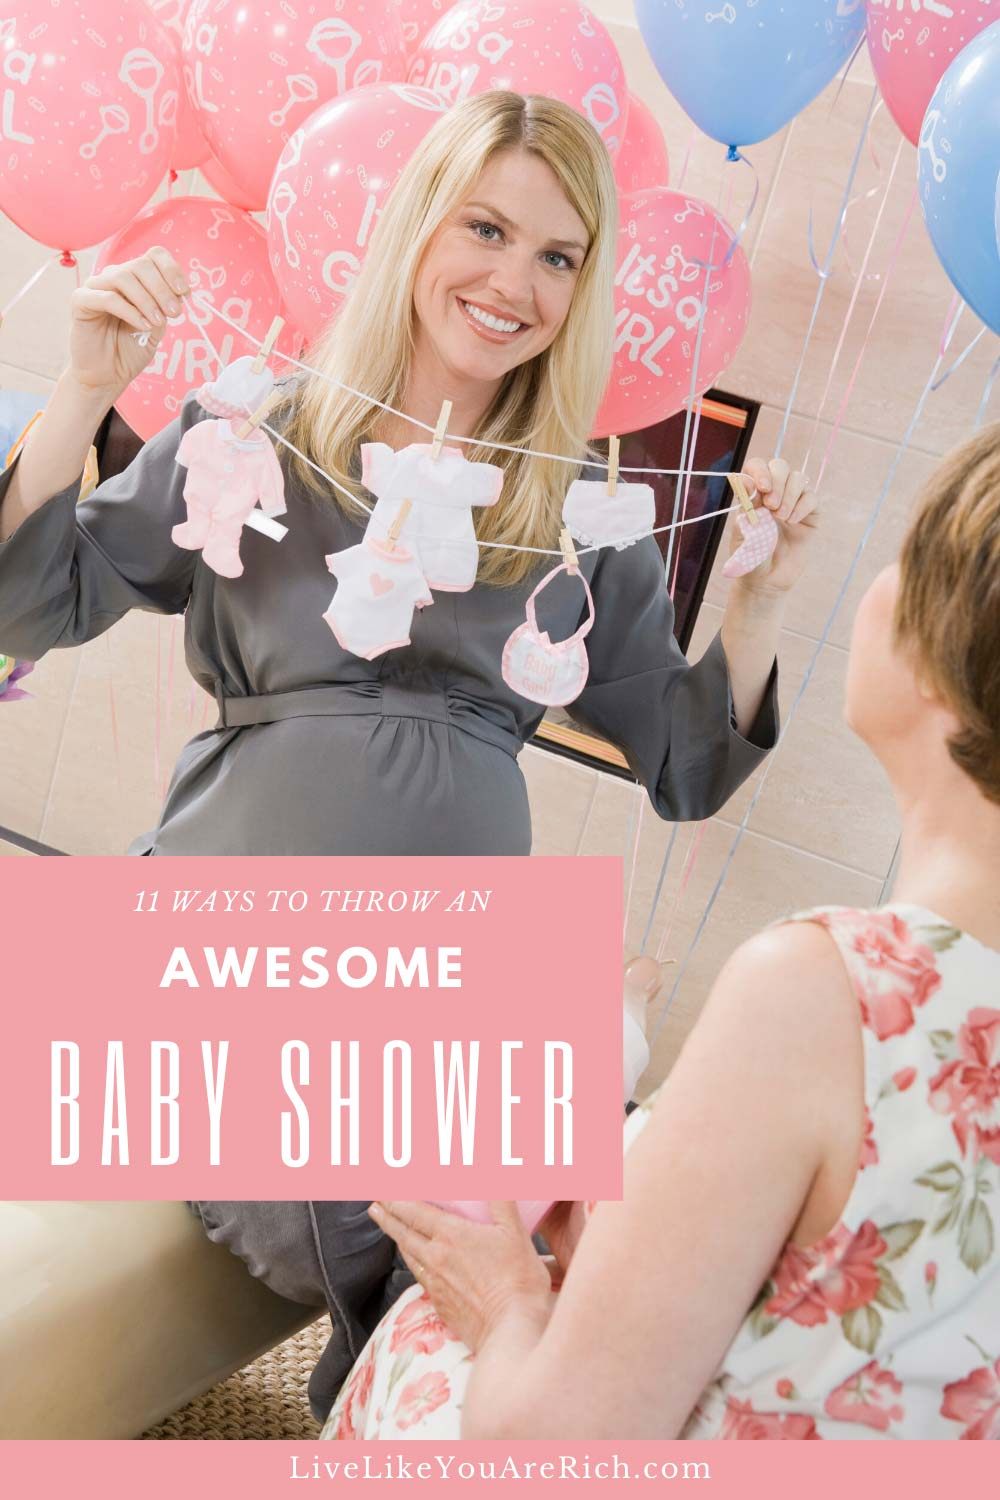 Most baby showers cost $300. Some say over $1,000. That's just too expensive if you ask me... here are 11 Ways to throw a baby shower for less than $50.00. Love tips 5 & 9! #babyshower #baby #savemoney